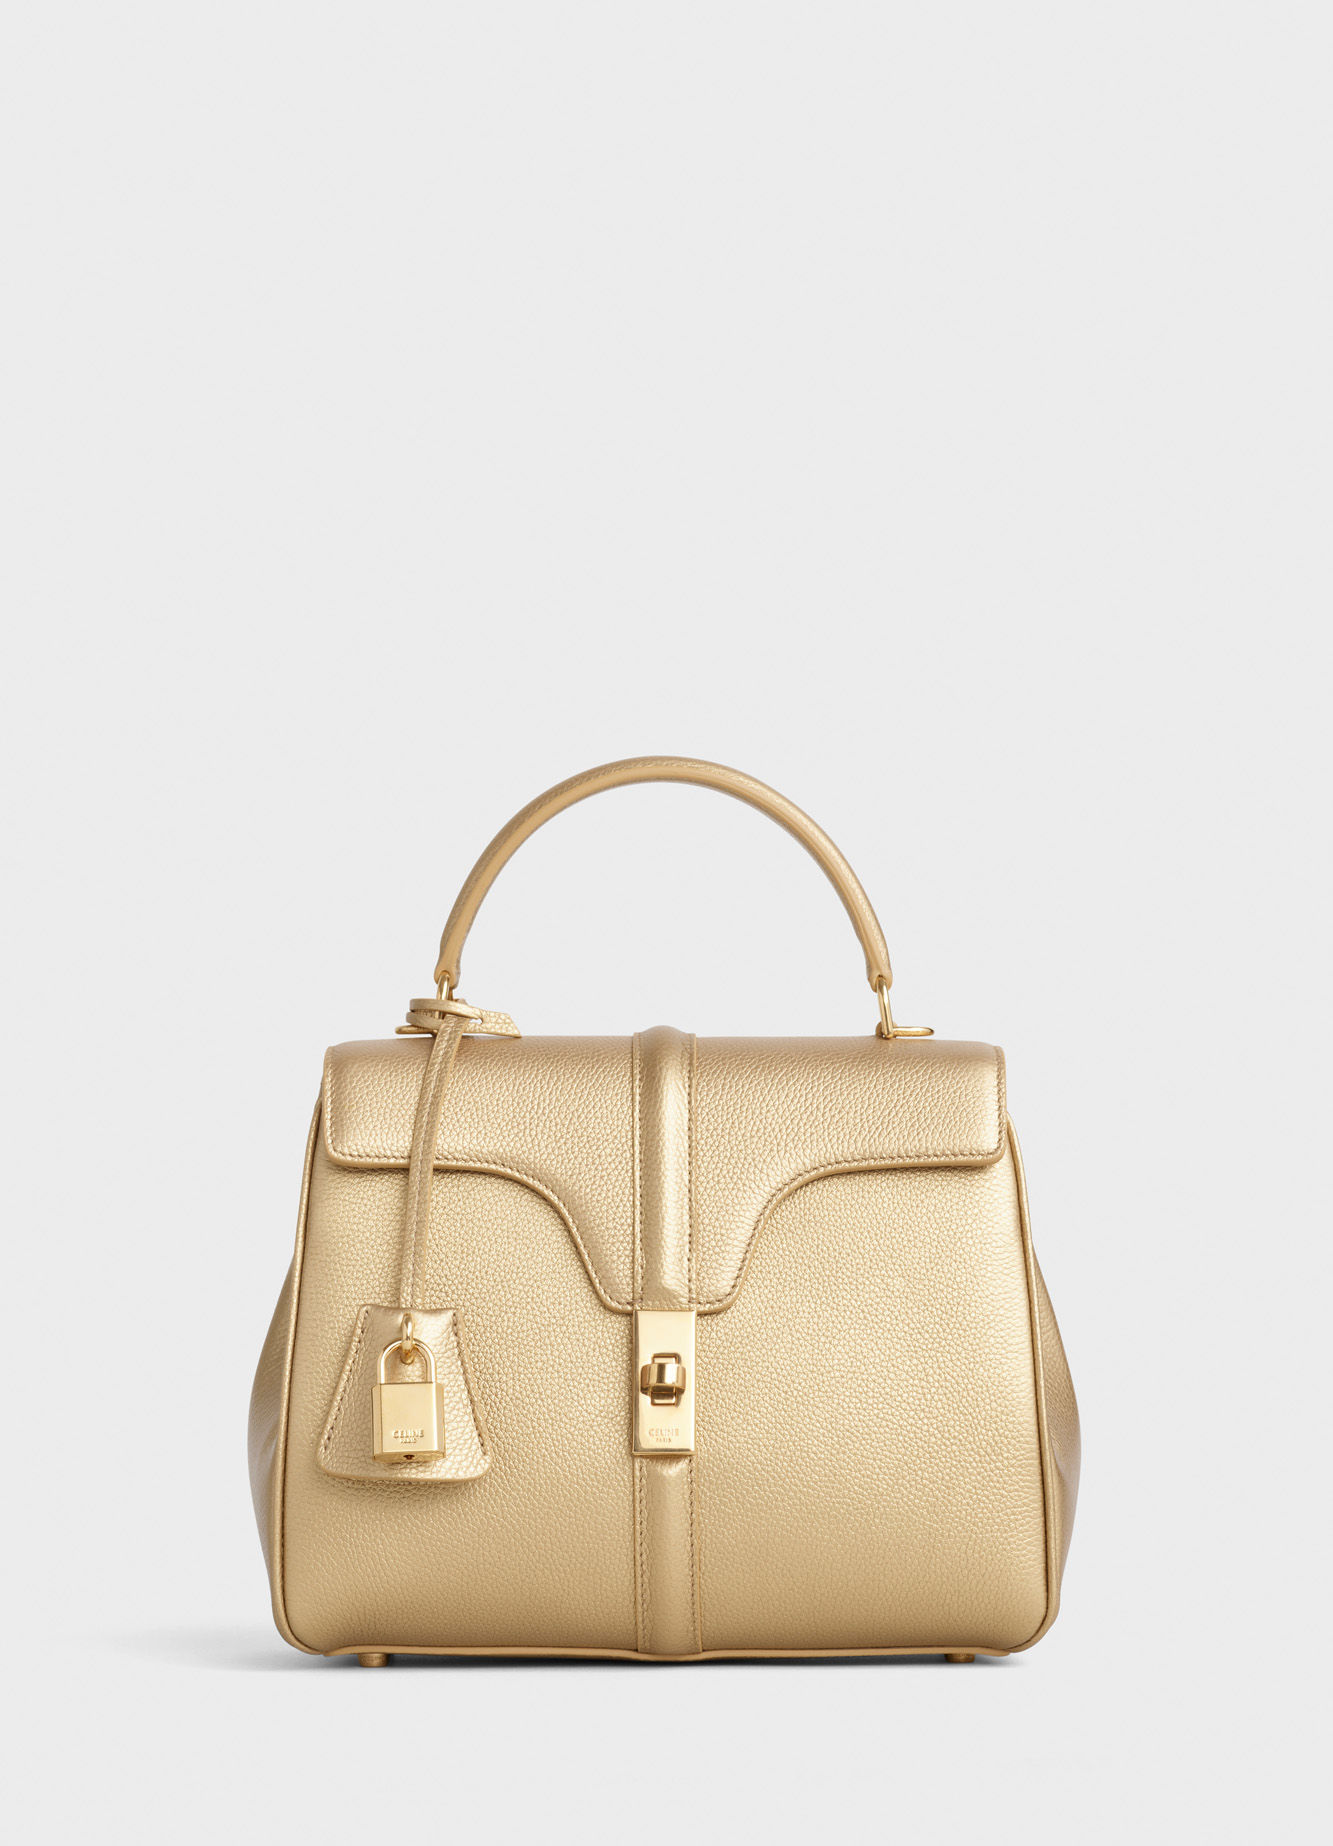 CELINE SMALL 16 BAG IN LAMINATED GRAINED CALFSKIN